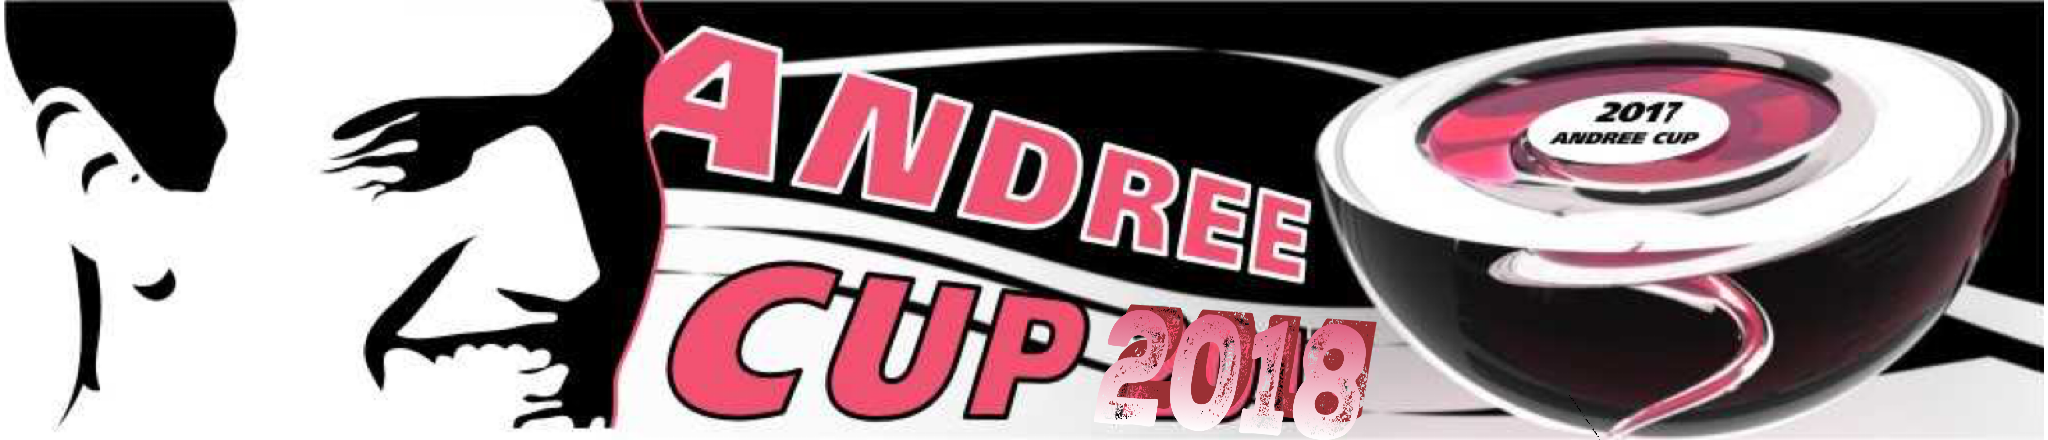 Andree Cup